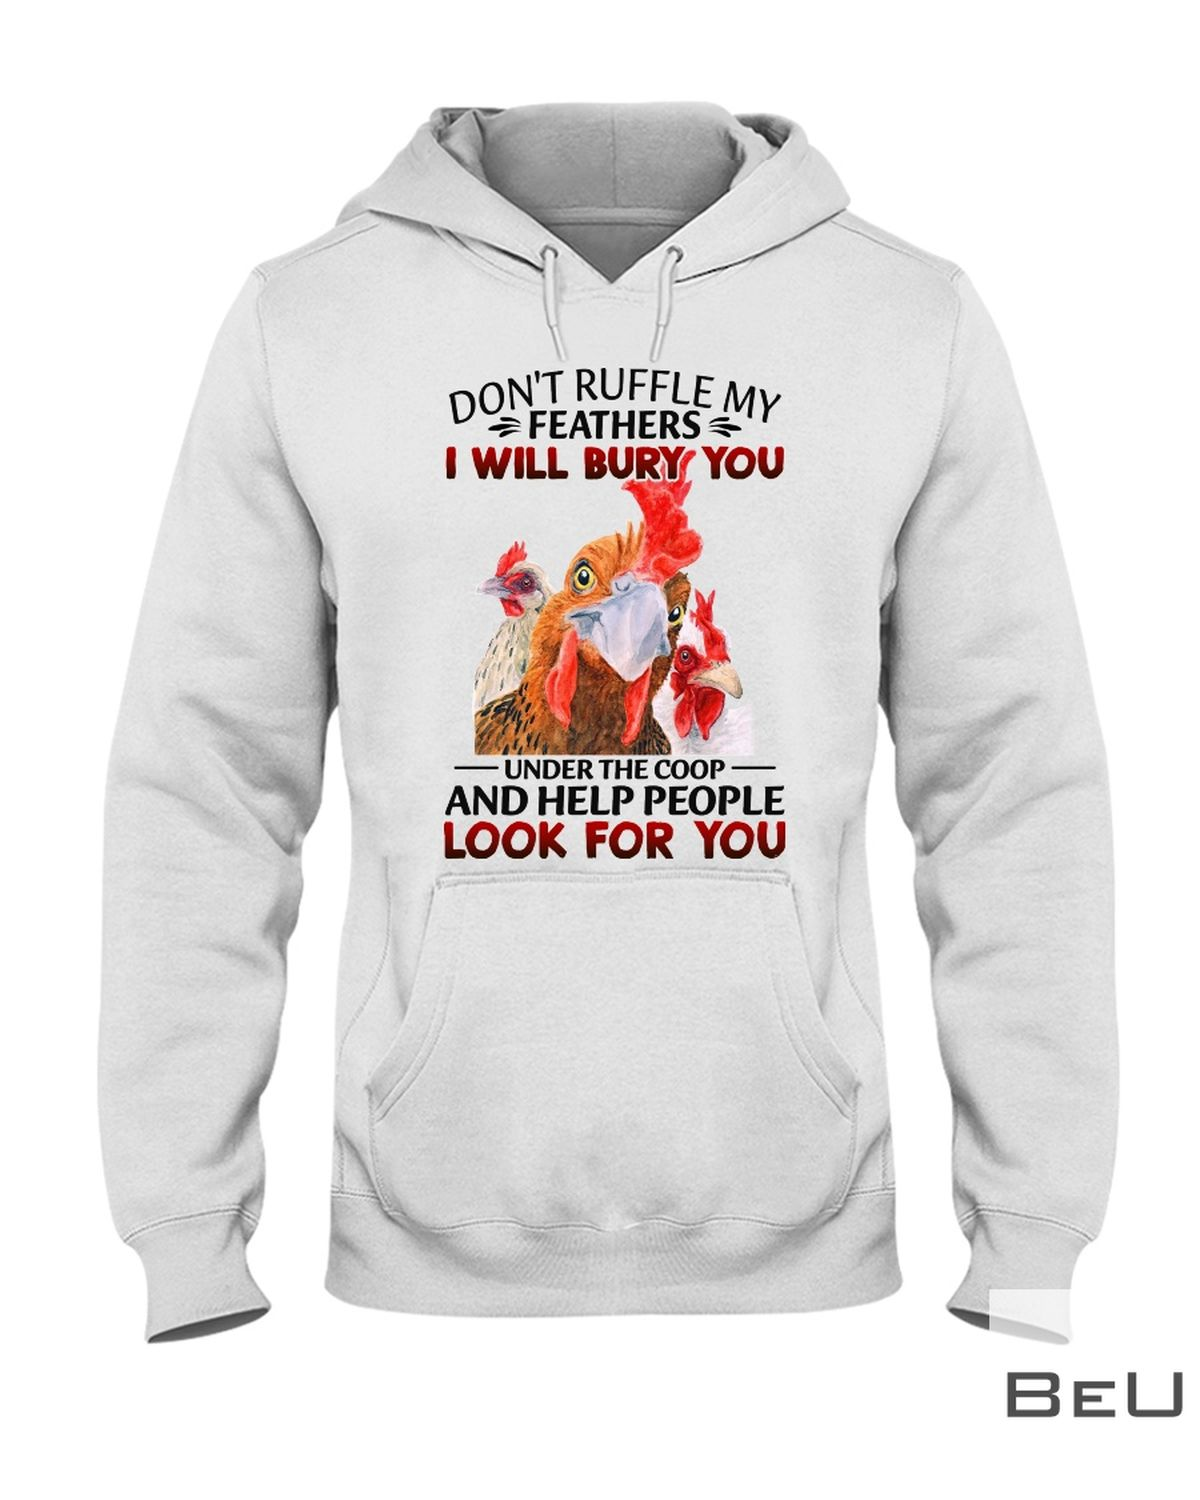 Chicken Don't Ruffle My Feathers I Will Bury You Under The Coop And Help People Look For You Shirtz